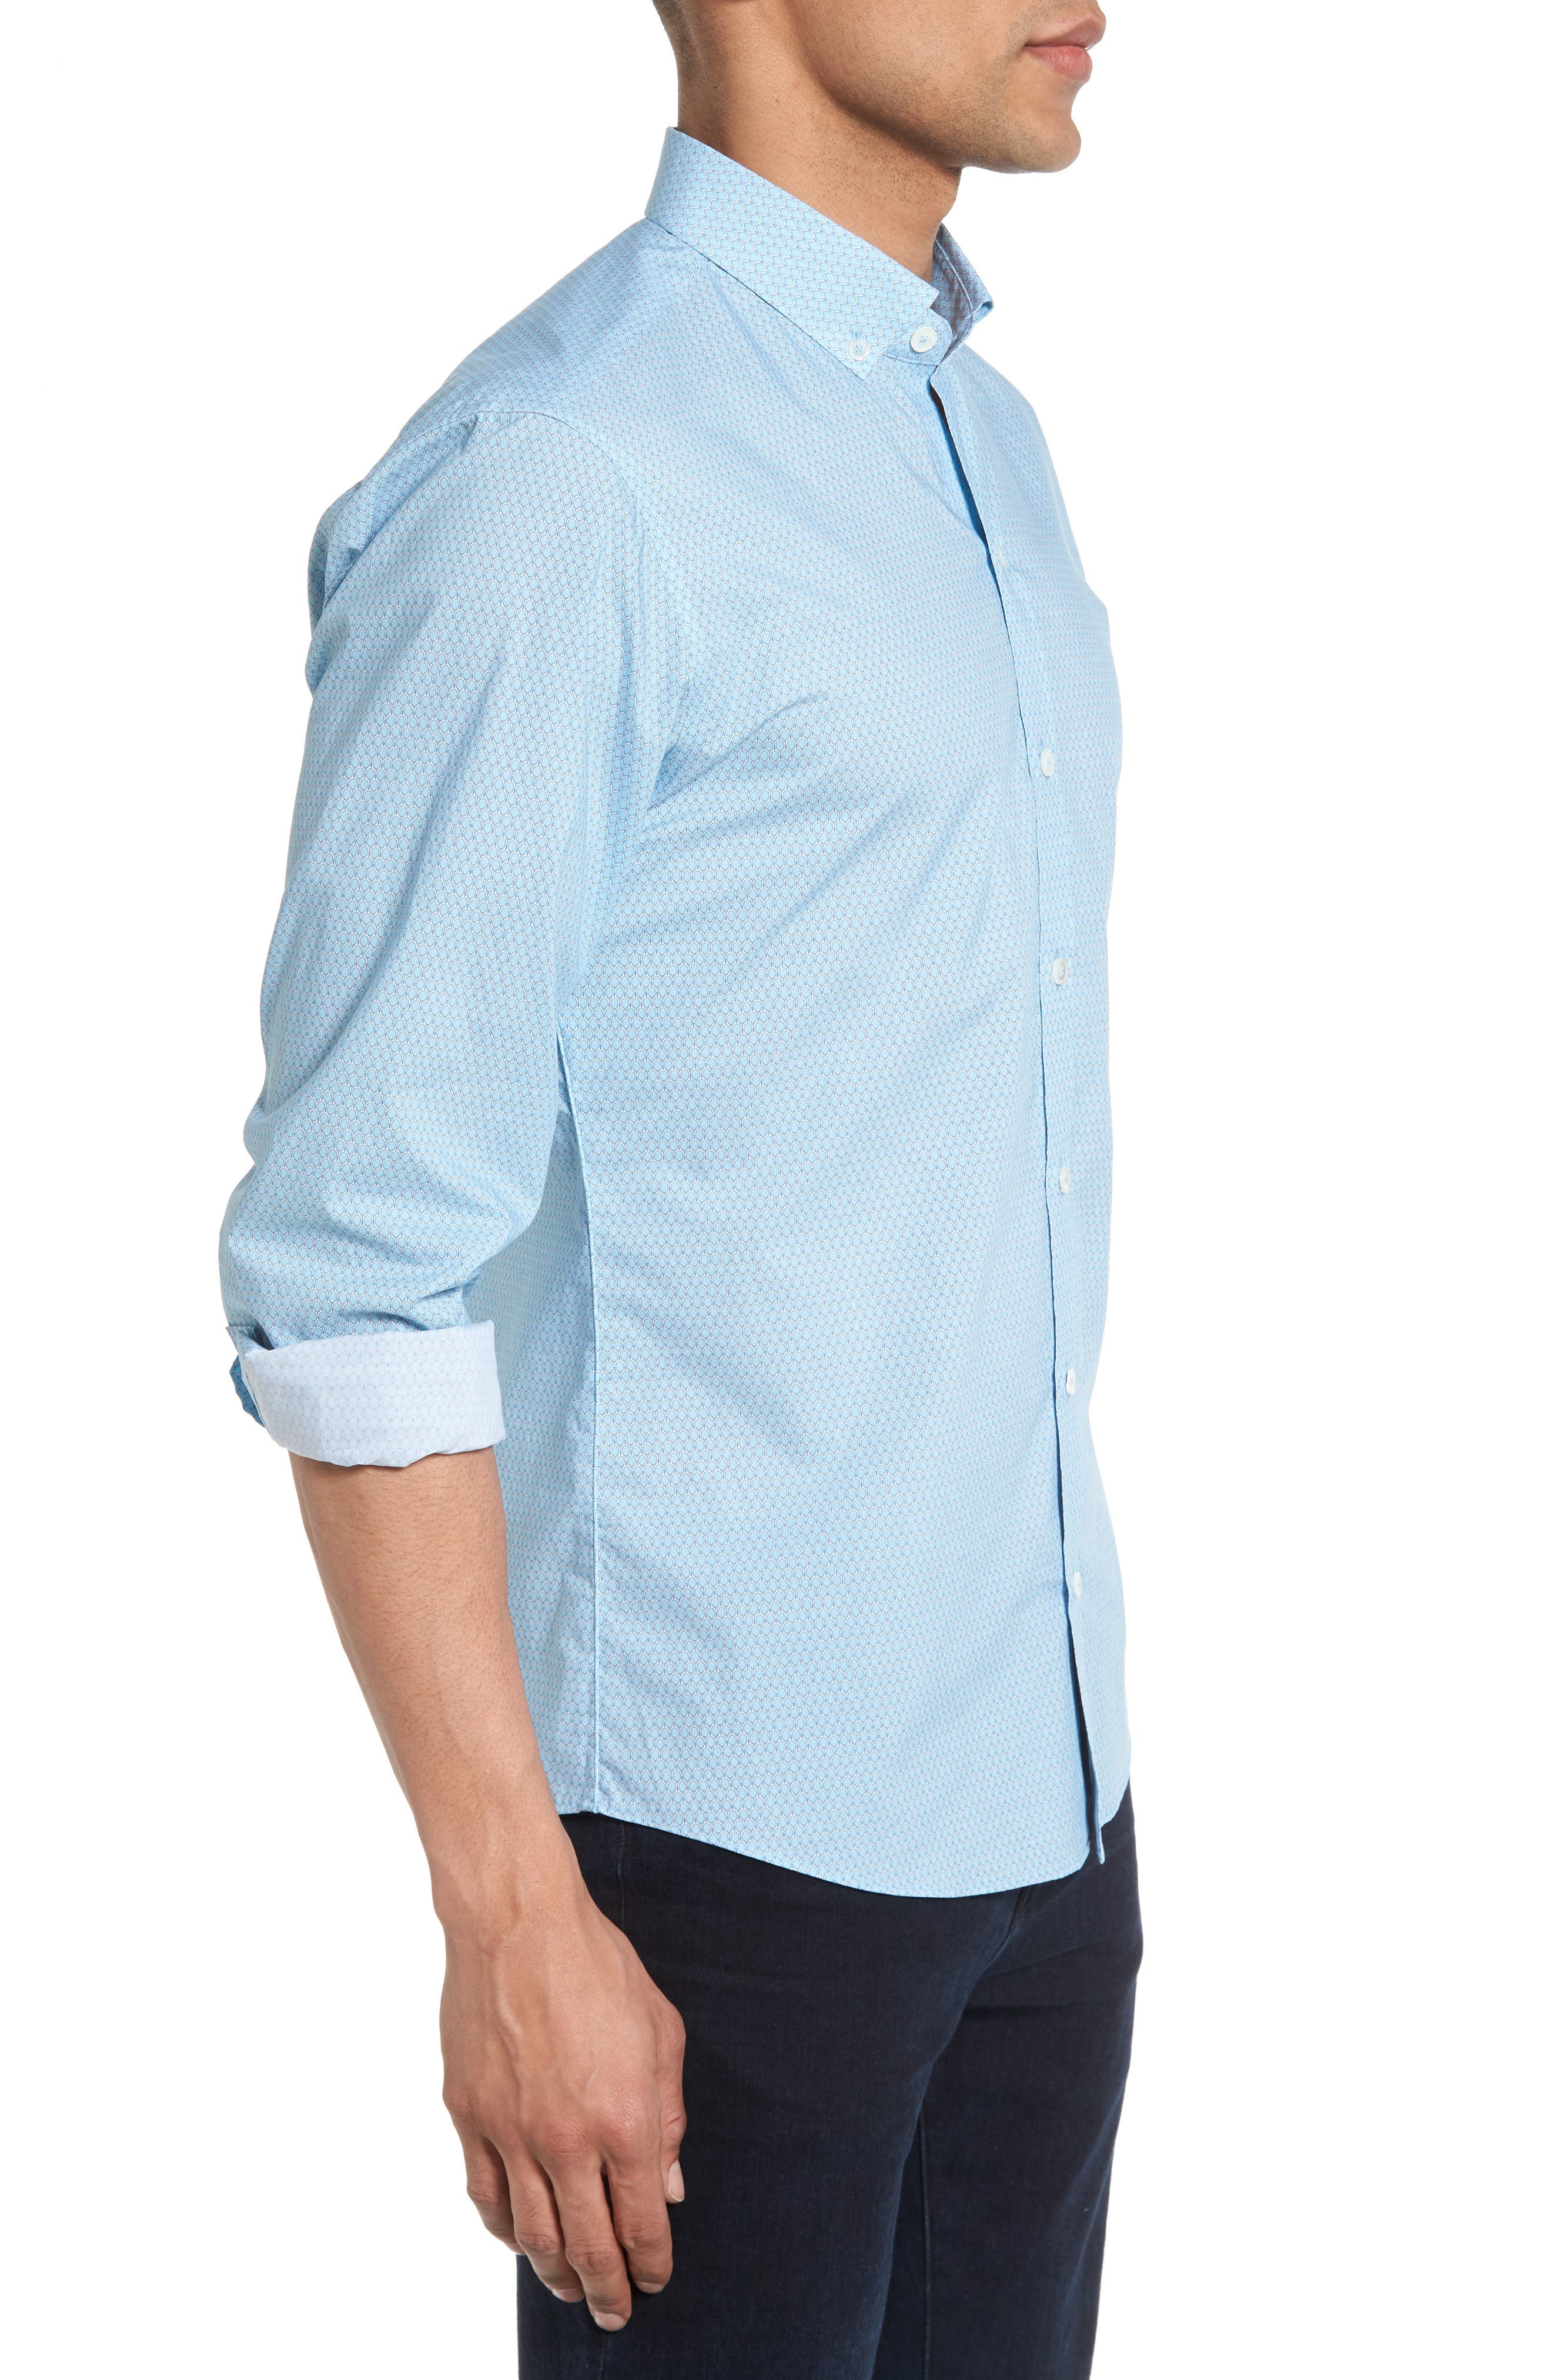 Alternate Image 3  - Zachary Prell Dakotah Trim Fit Print Sport Shirt